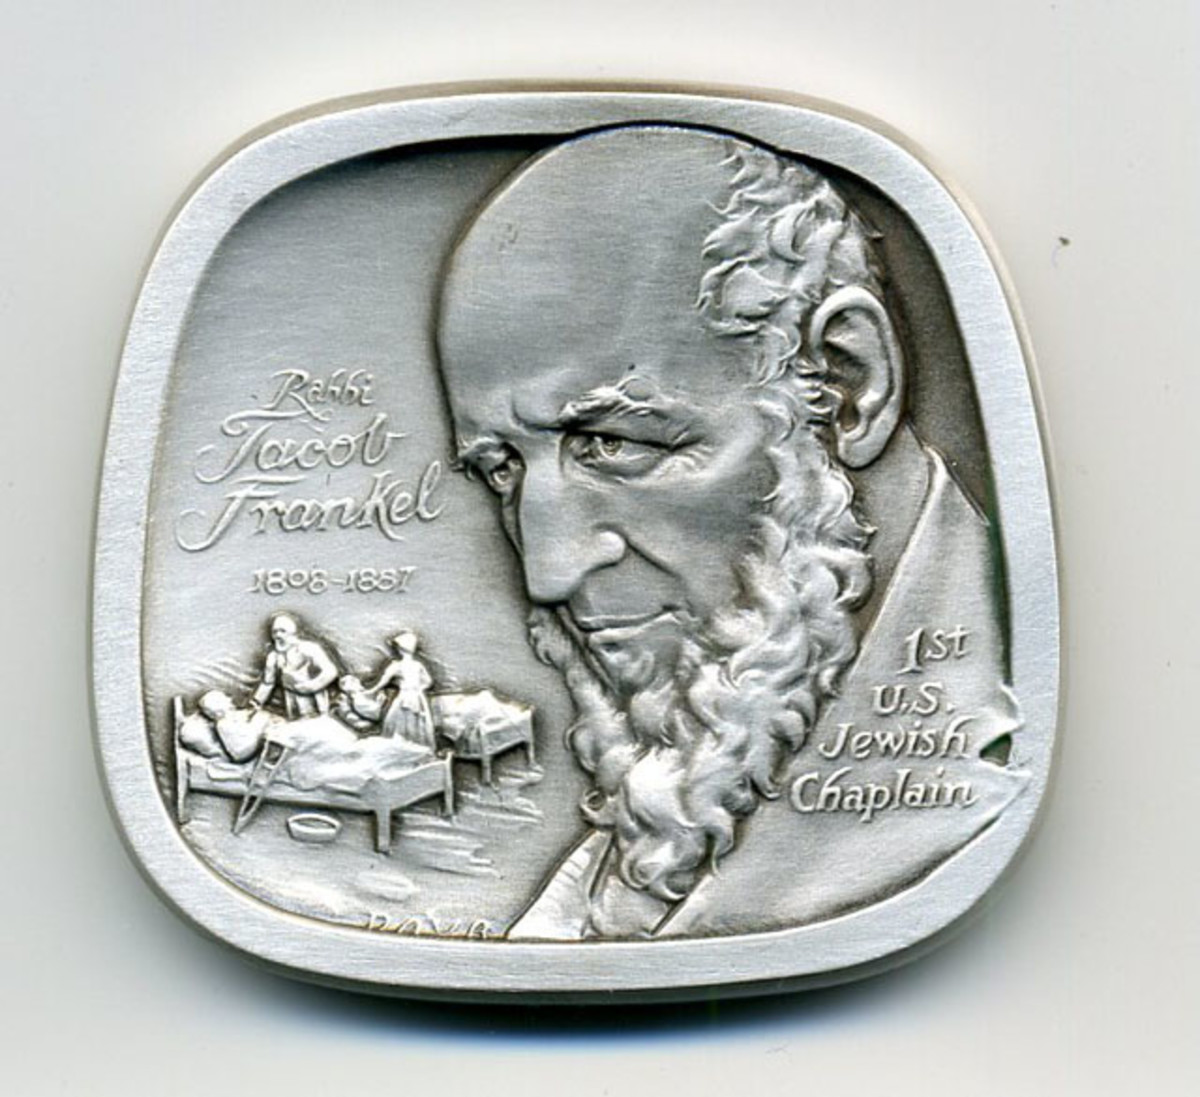 One side of the medal features